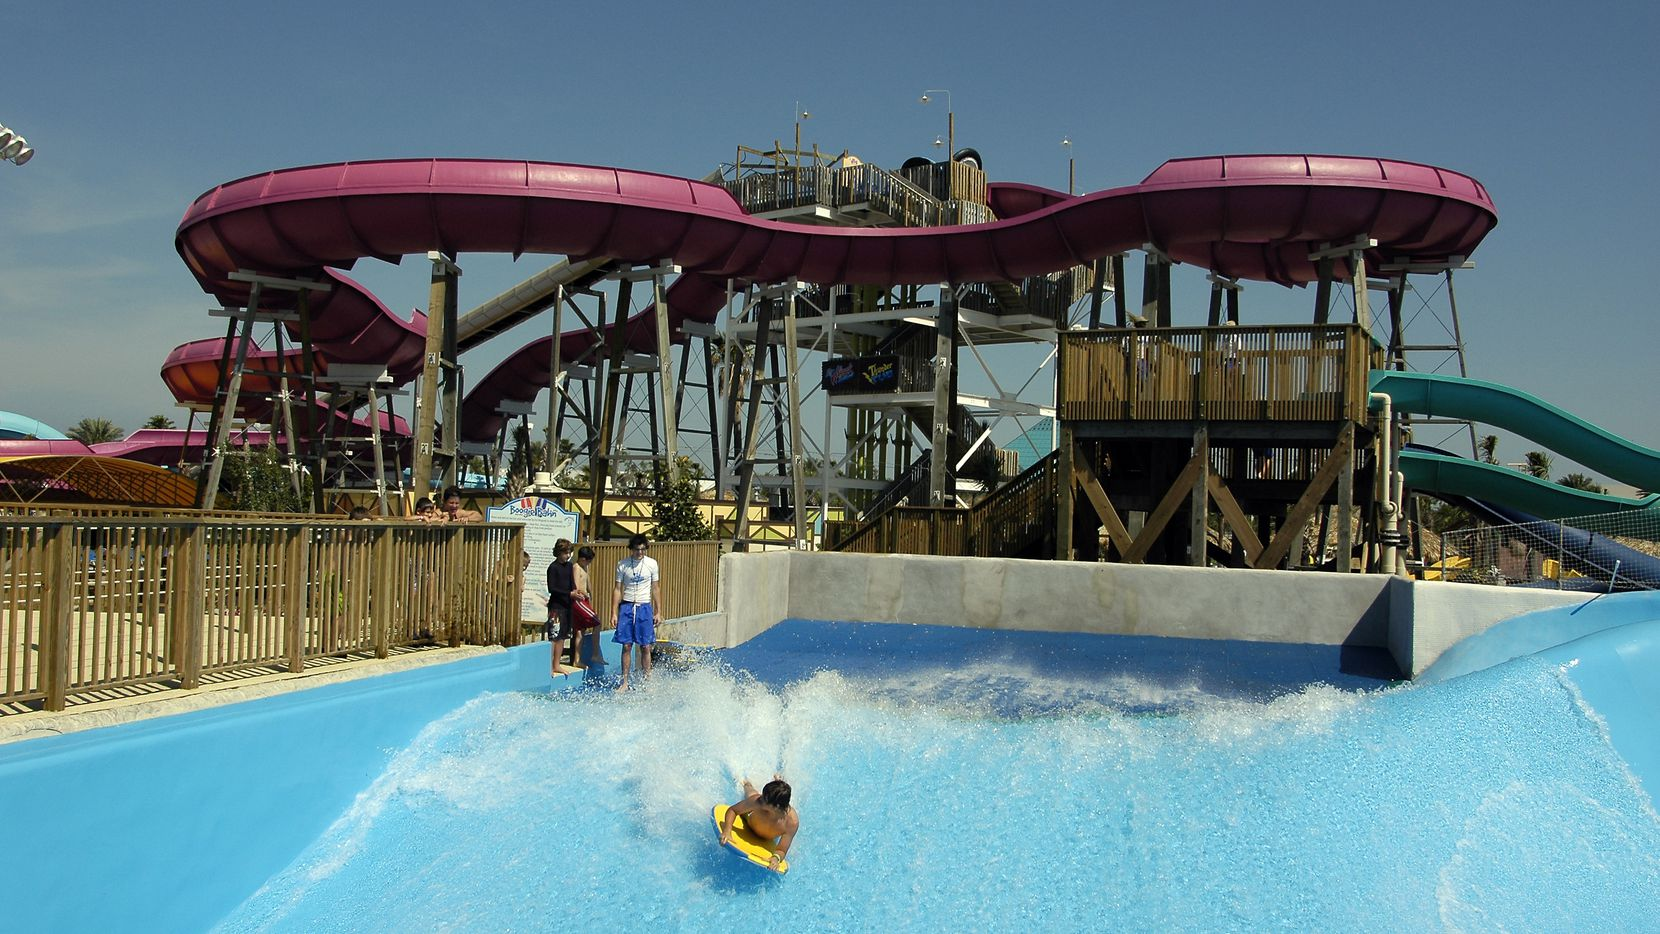 Schlitterbahn is celebrating 10 years since its water park opened in Galveston. It will unveil the world's tallest water coaster this summer.